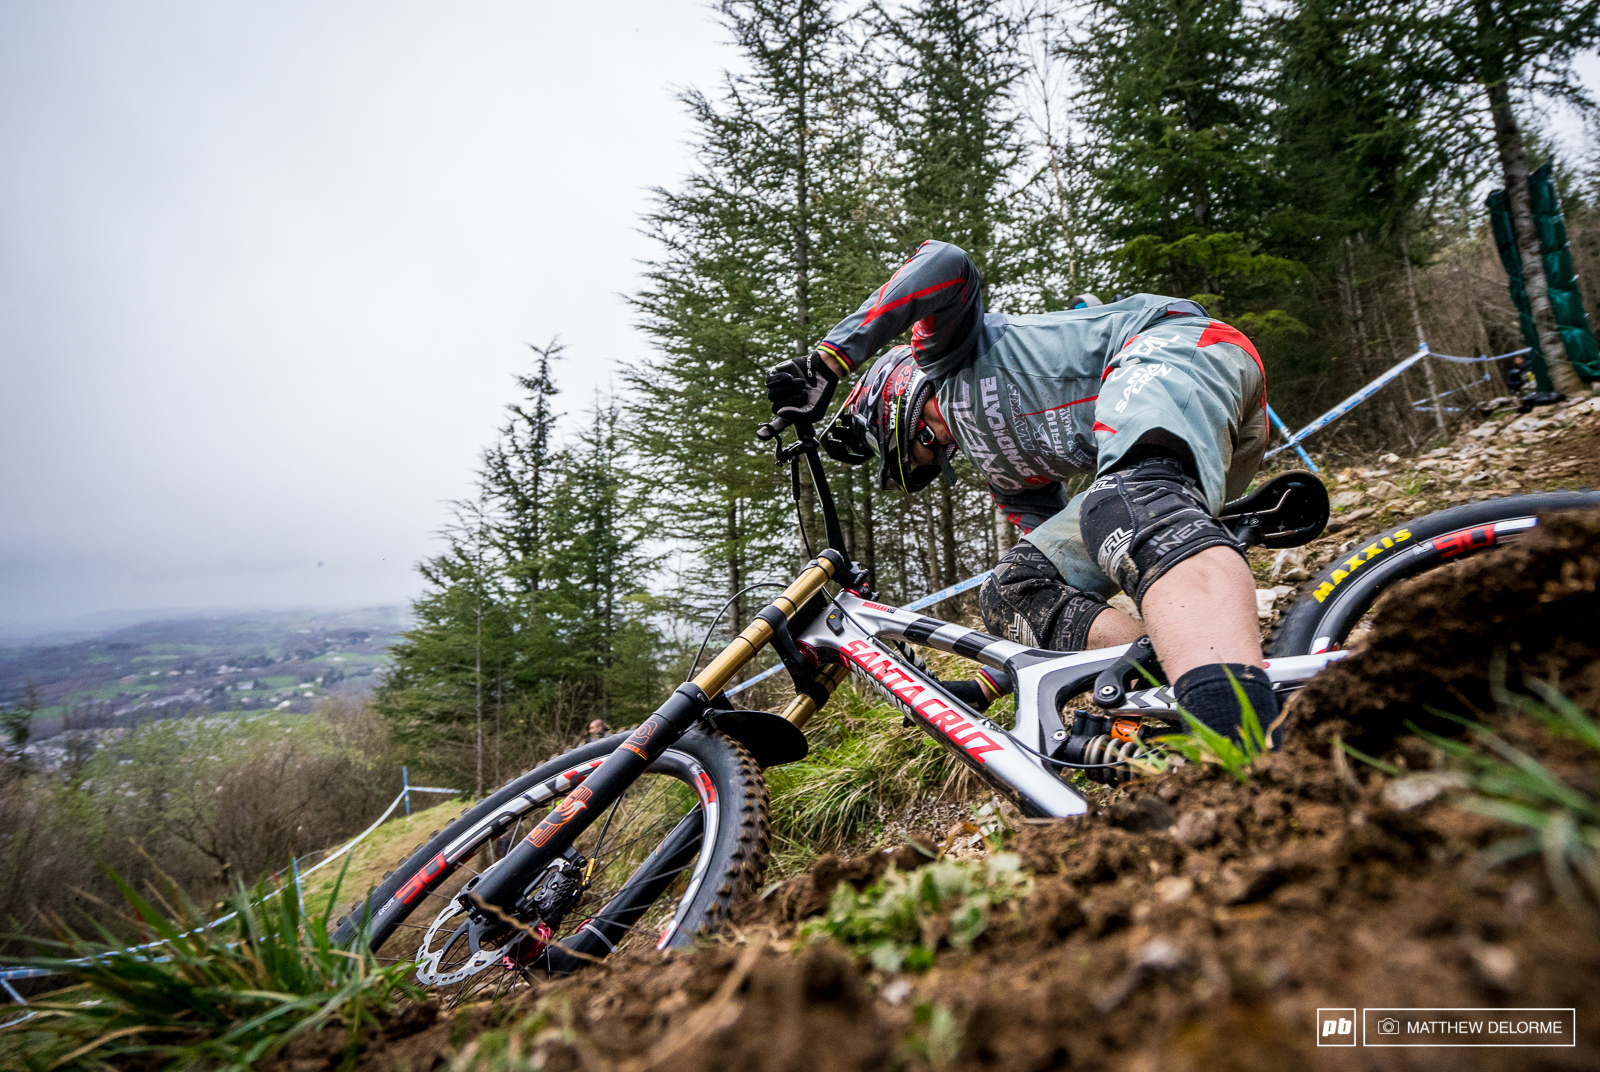 Greg Minnaar ripping his XXL V10. We will have an in depth look at this beast very soon.